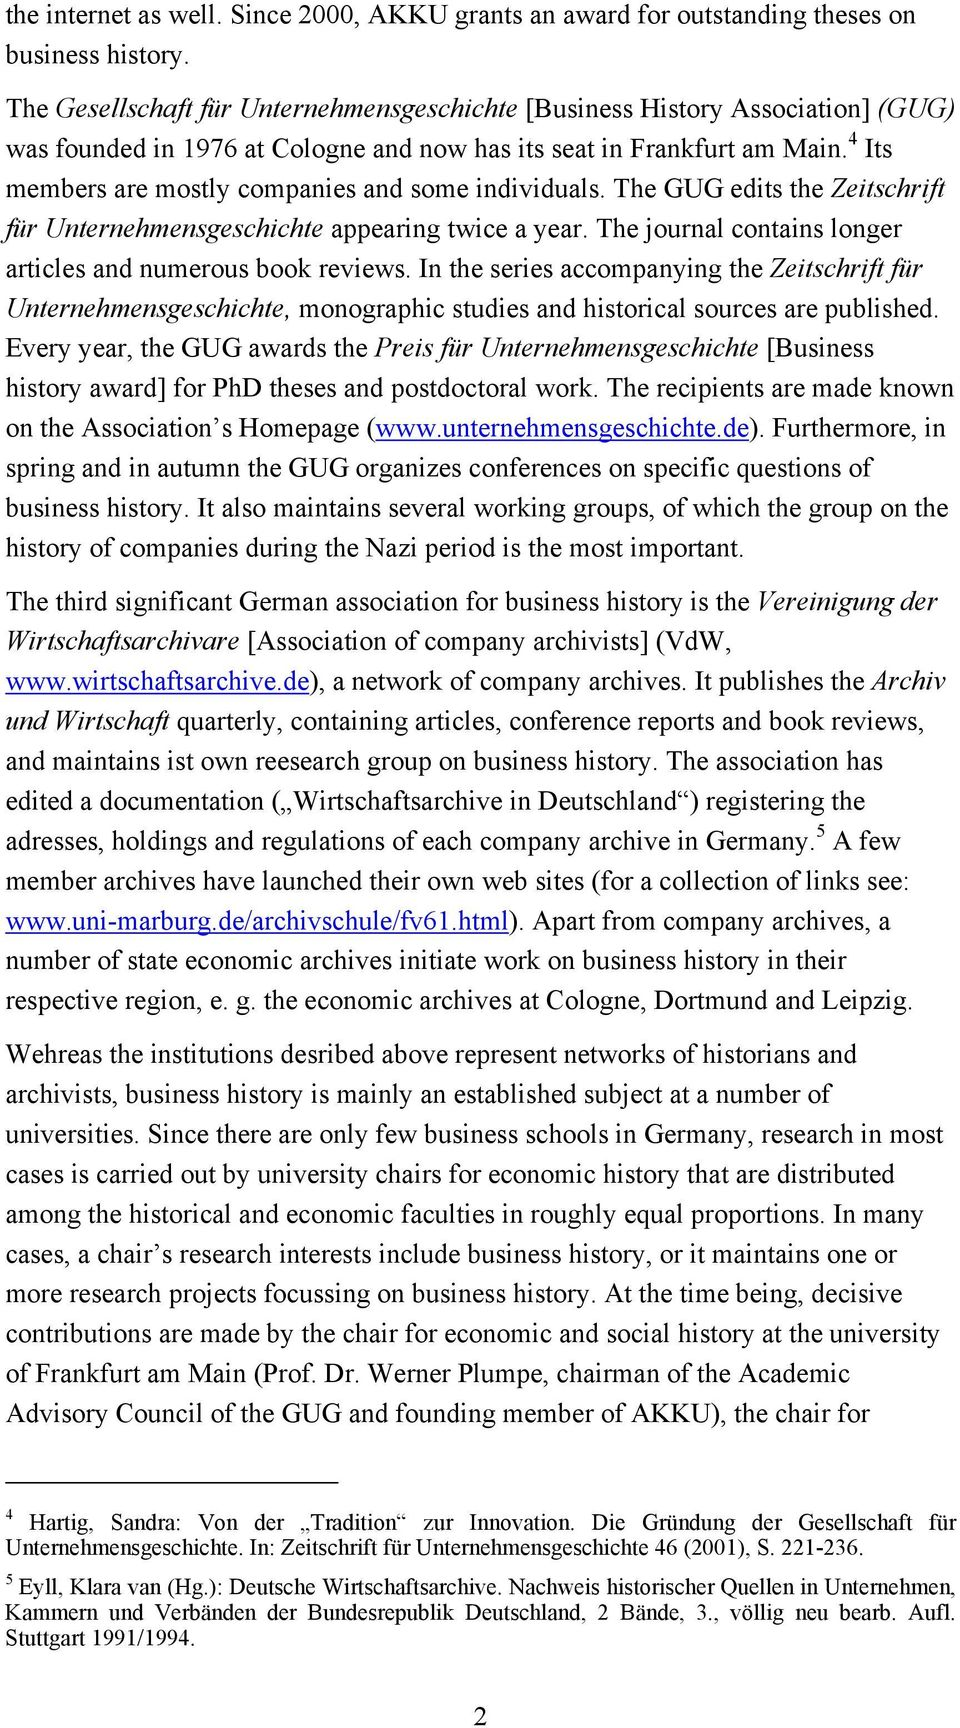 4 Its members are mostly companies and some individuals. The GUG edits the Zeitschrift für Unternehmensgeschichte appearing twice a year.